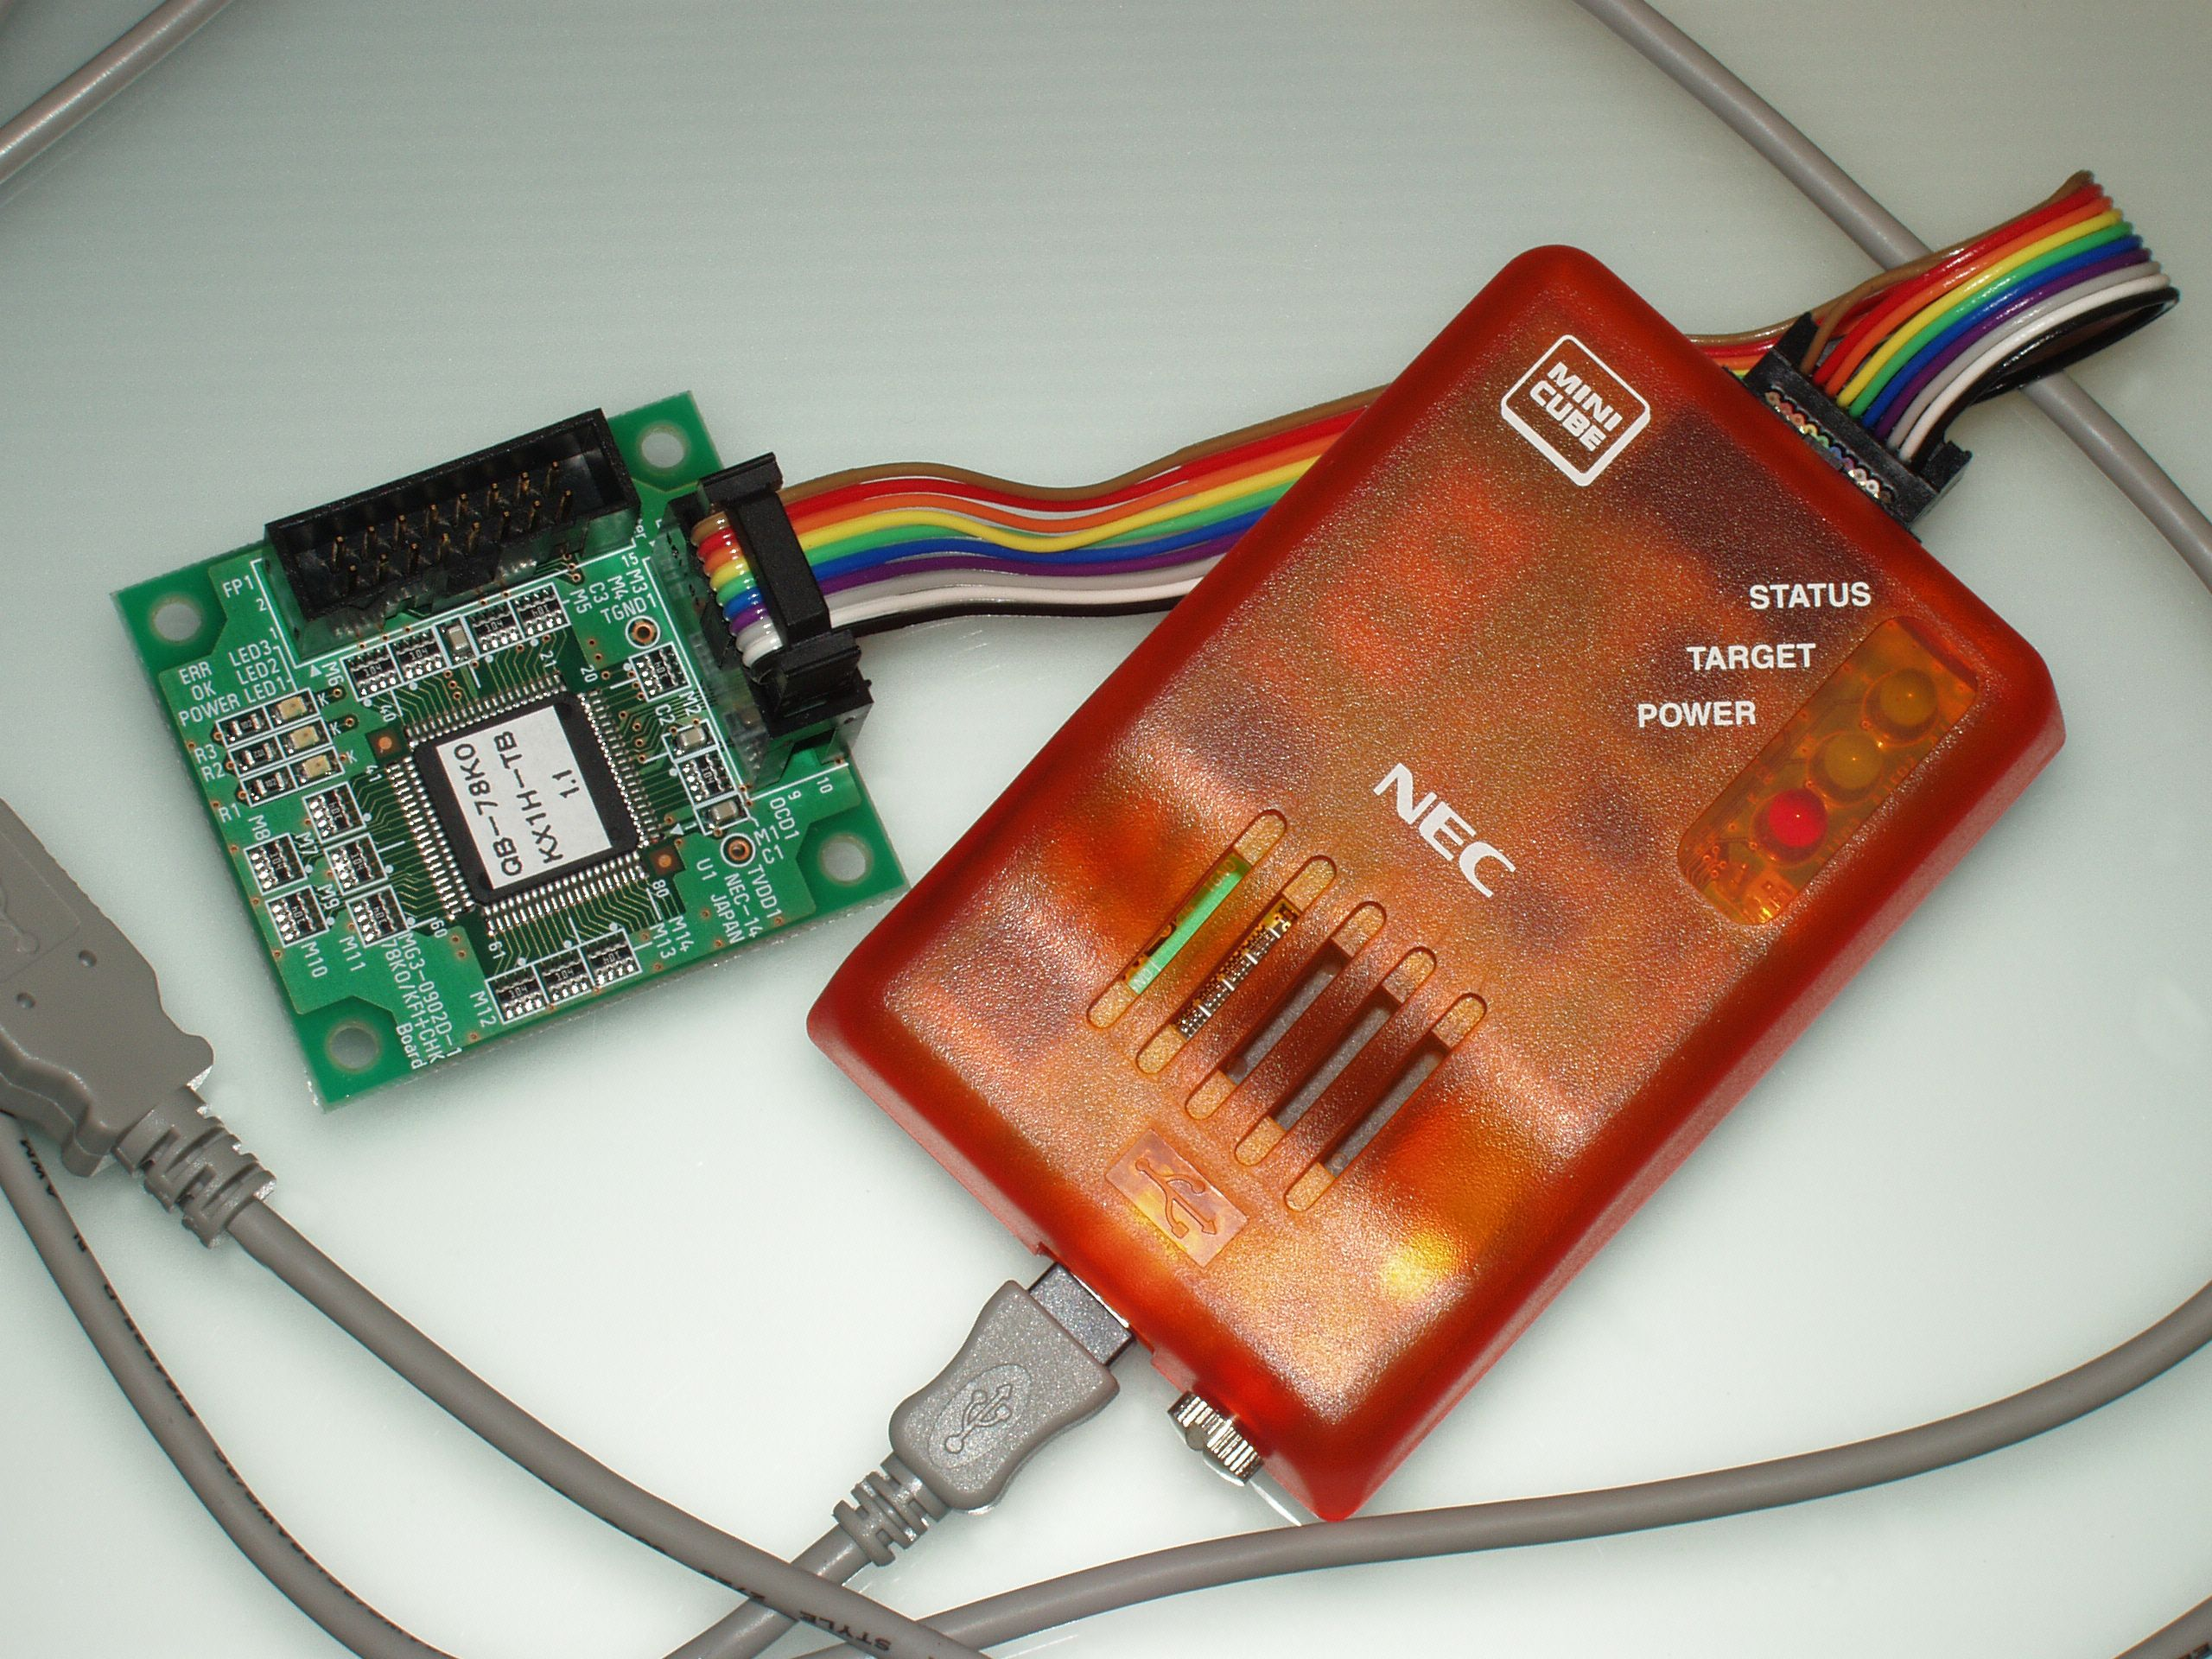 Optima Technology is leading Manufacturer of #PCBA (printed circuit